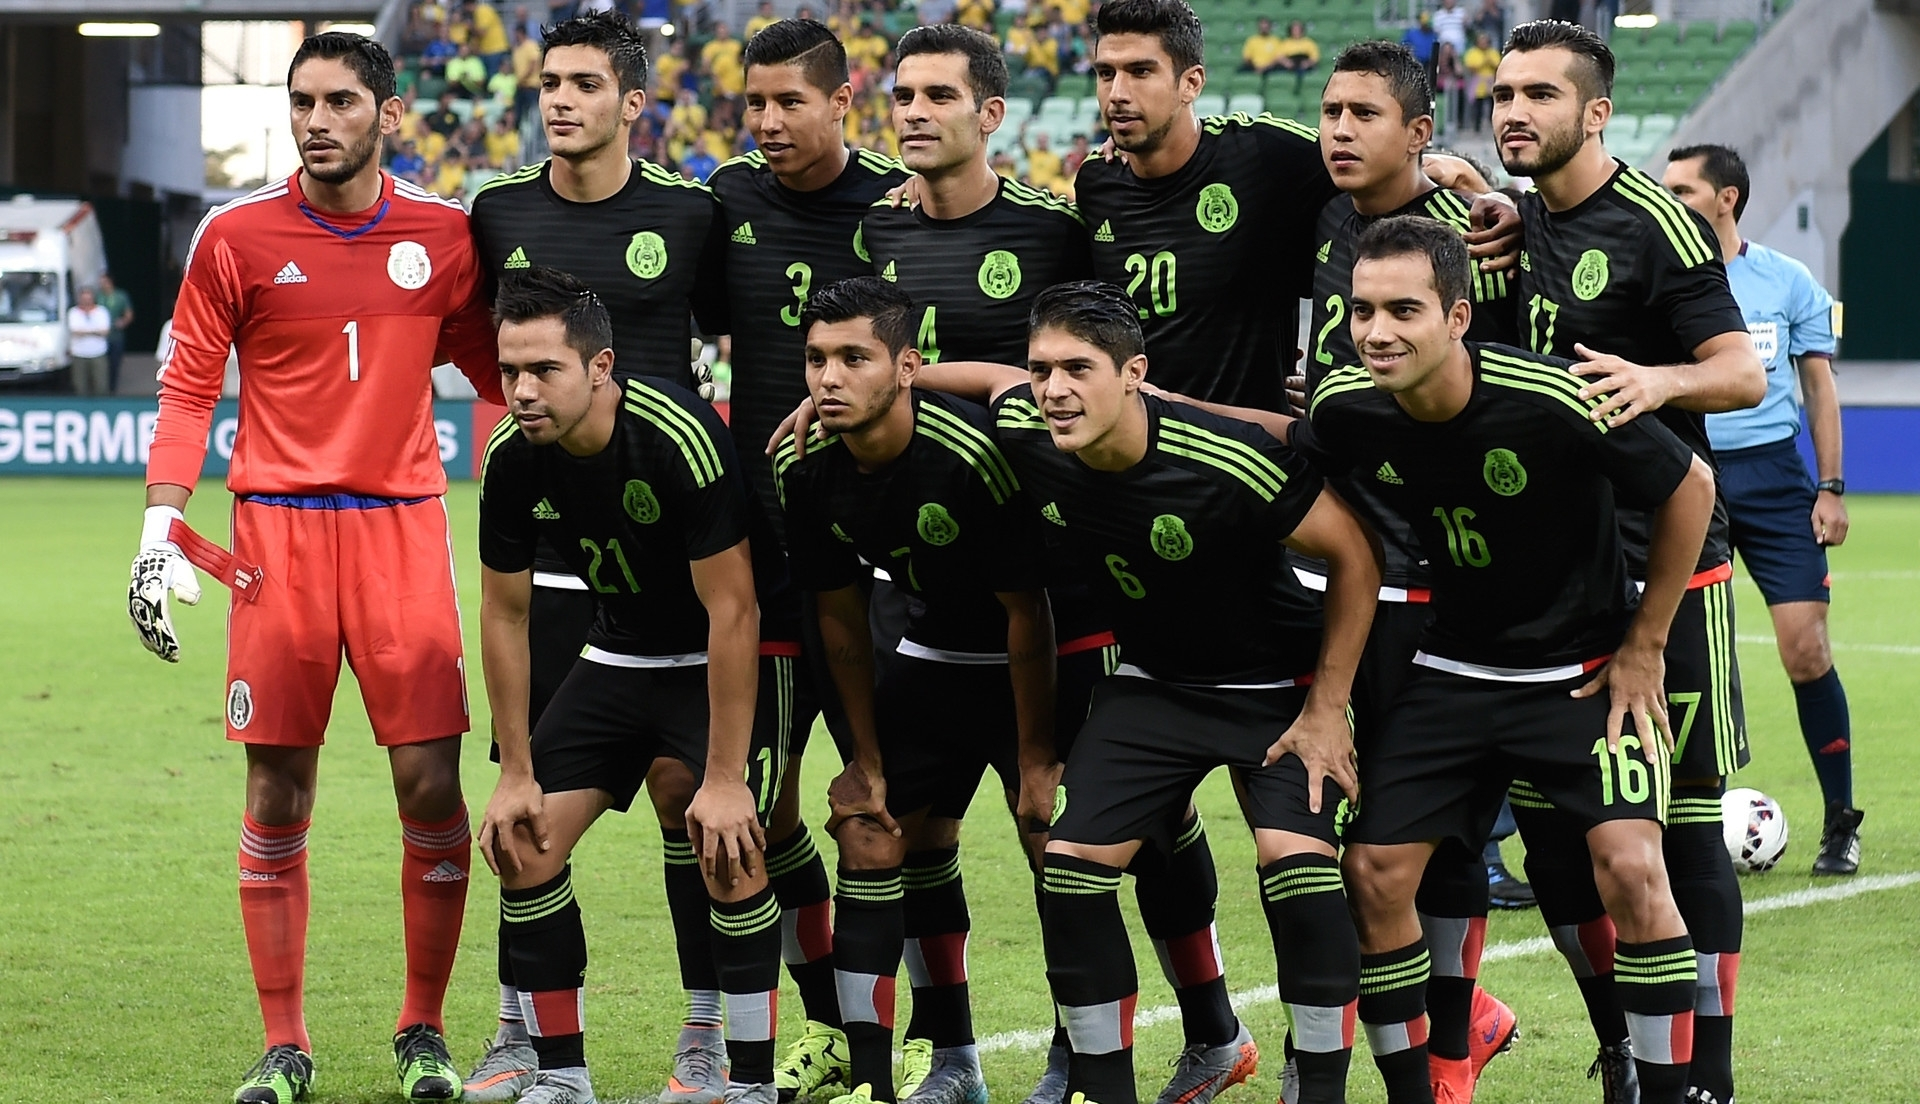 mexico soccer team 2018 wallpaper (77+ images)